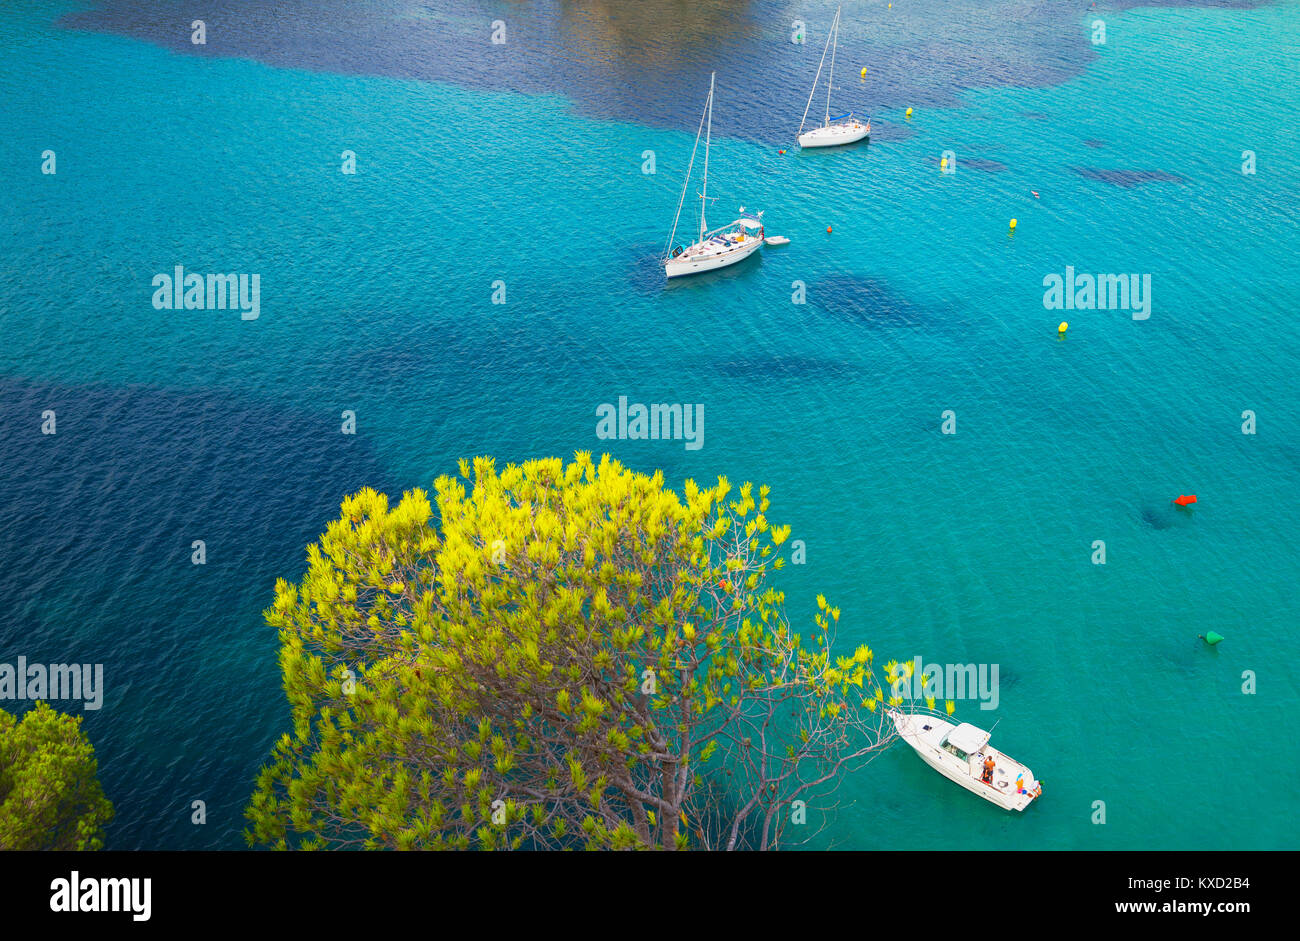 View of Cala Galdana and sailboats, Menorca, Balearic Island, Spain, Europe - Stock Image